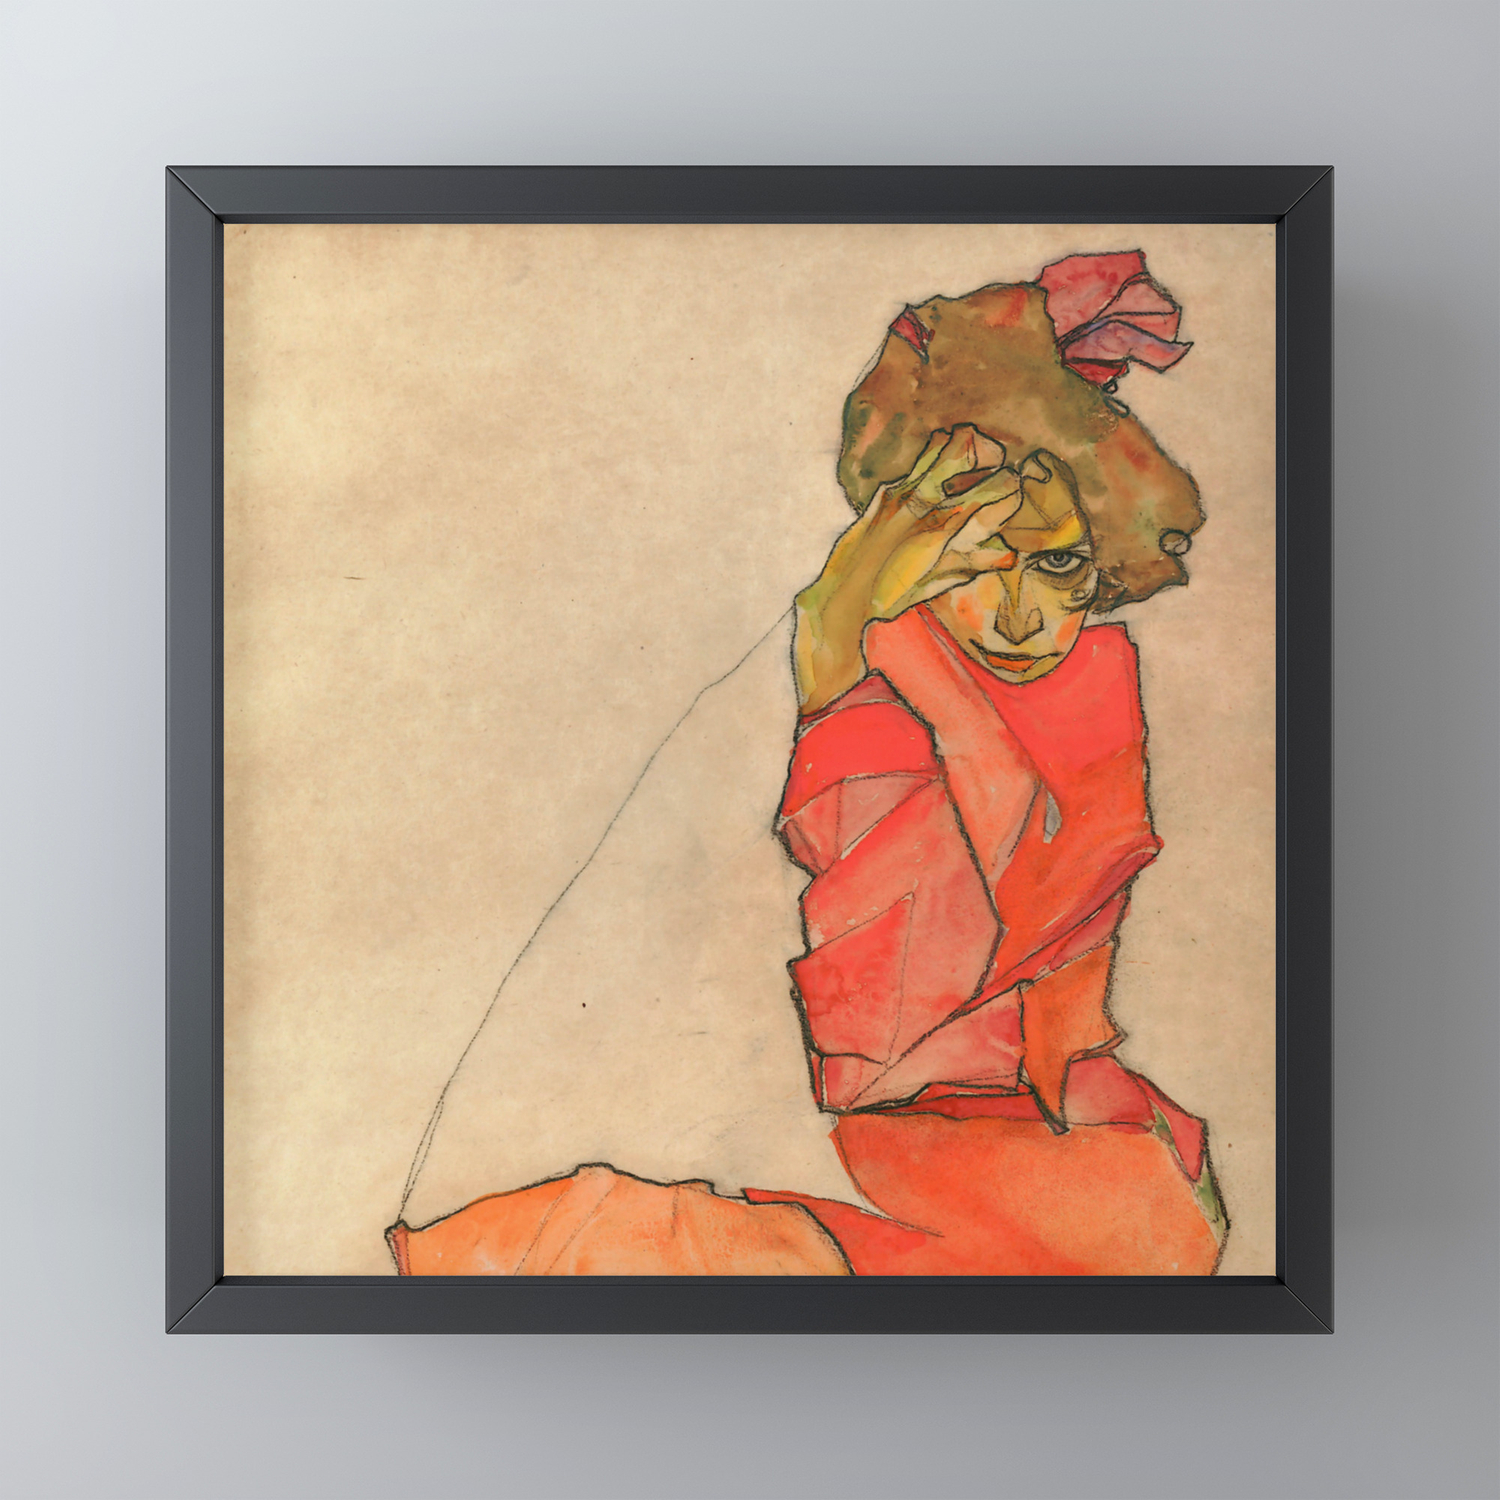 Kneeling Female in ORANGE-RED DRESS Egon Schiele donne vestiti Faks /_ B 01624